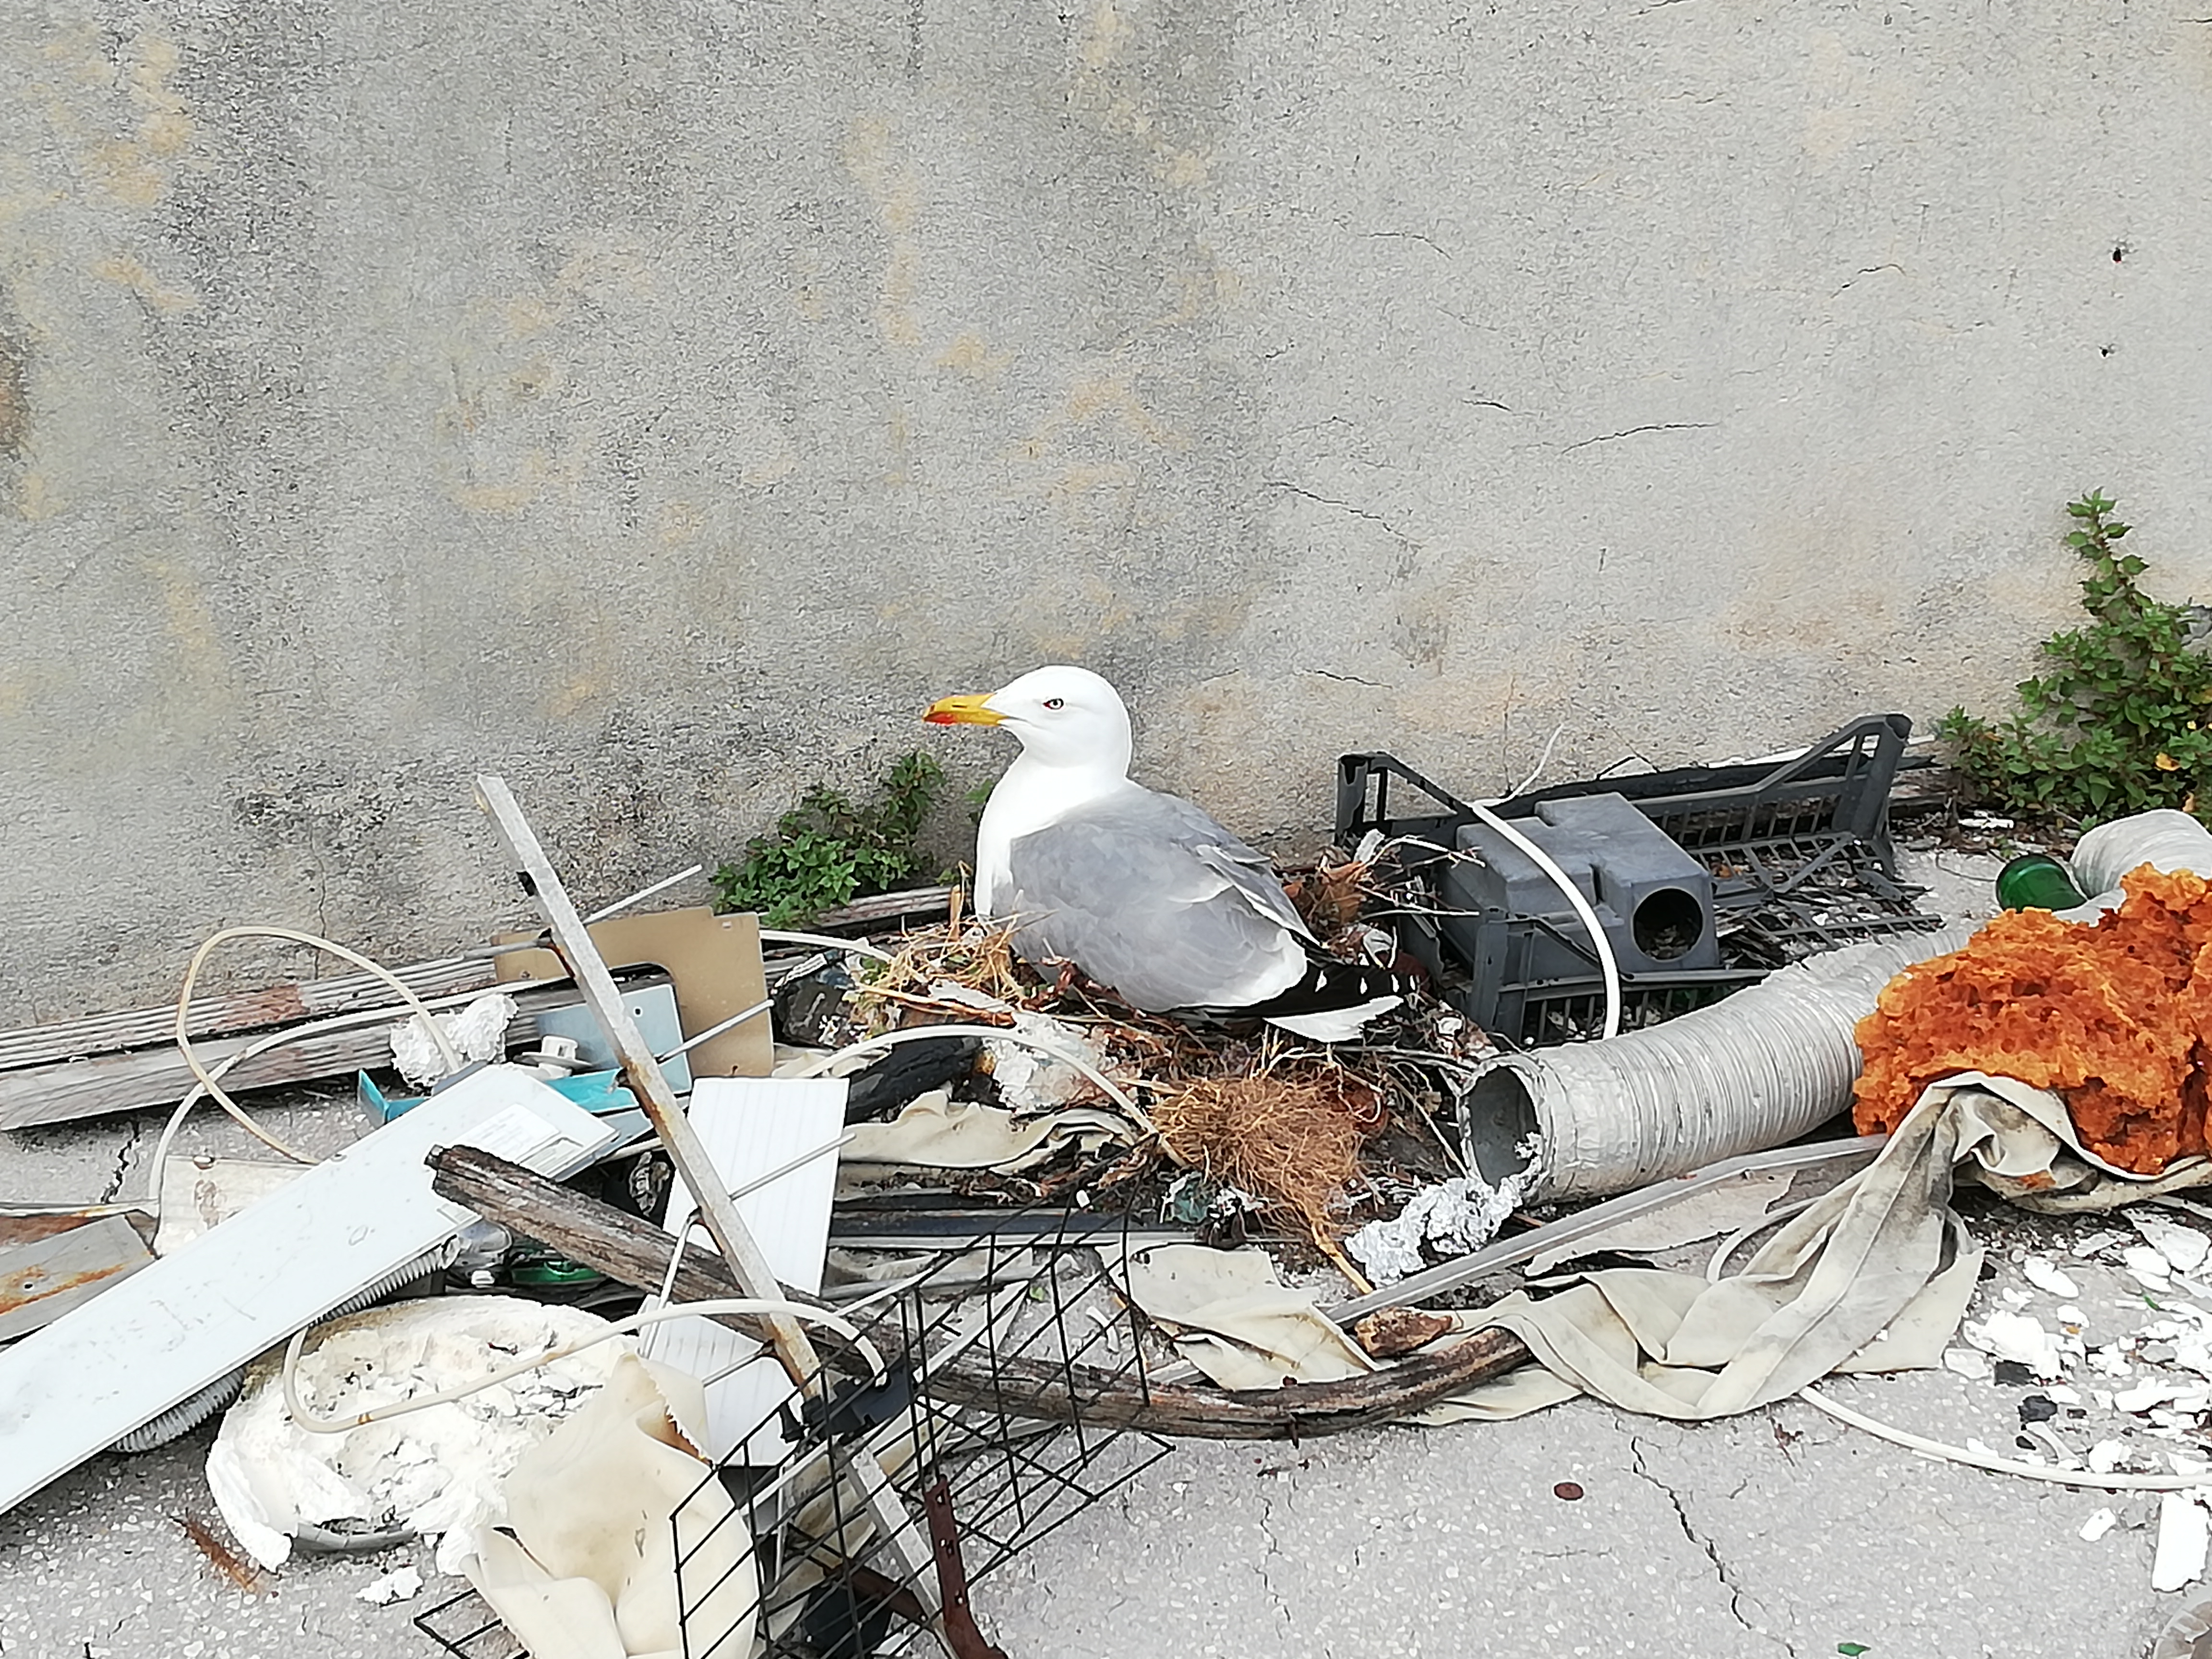 File:Seagull using rubbish to build a nest - Nice - 2018-05